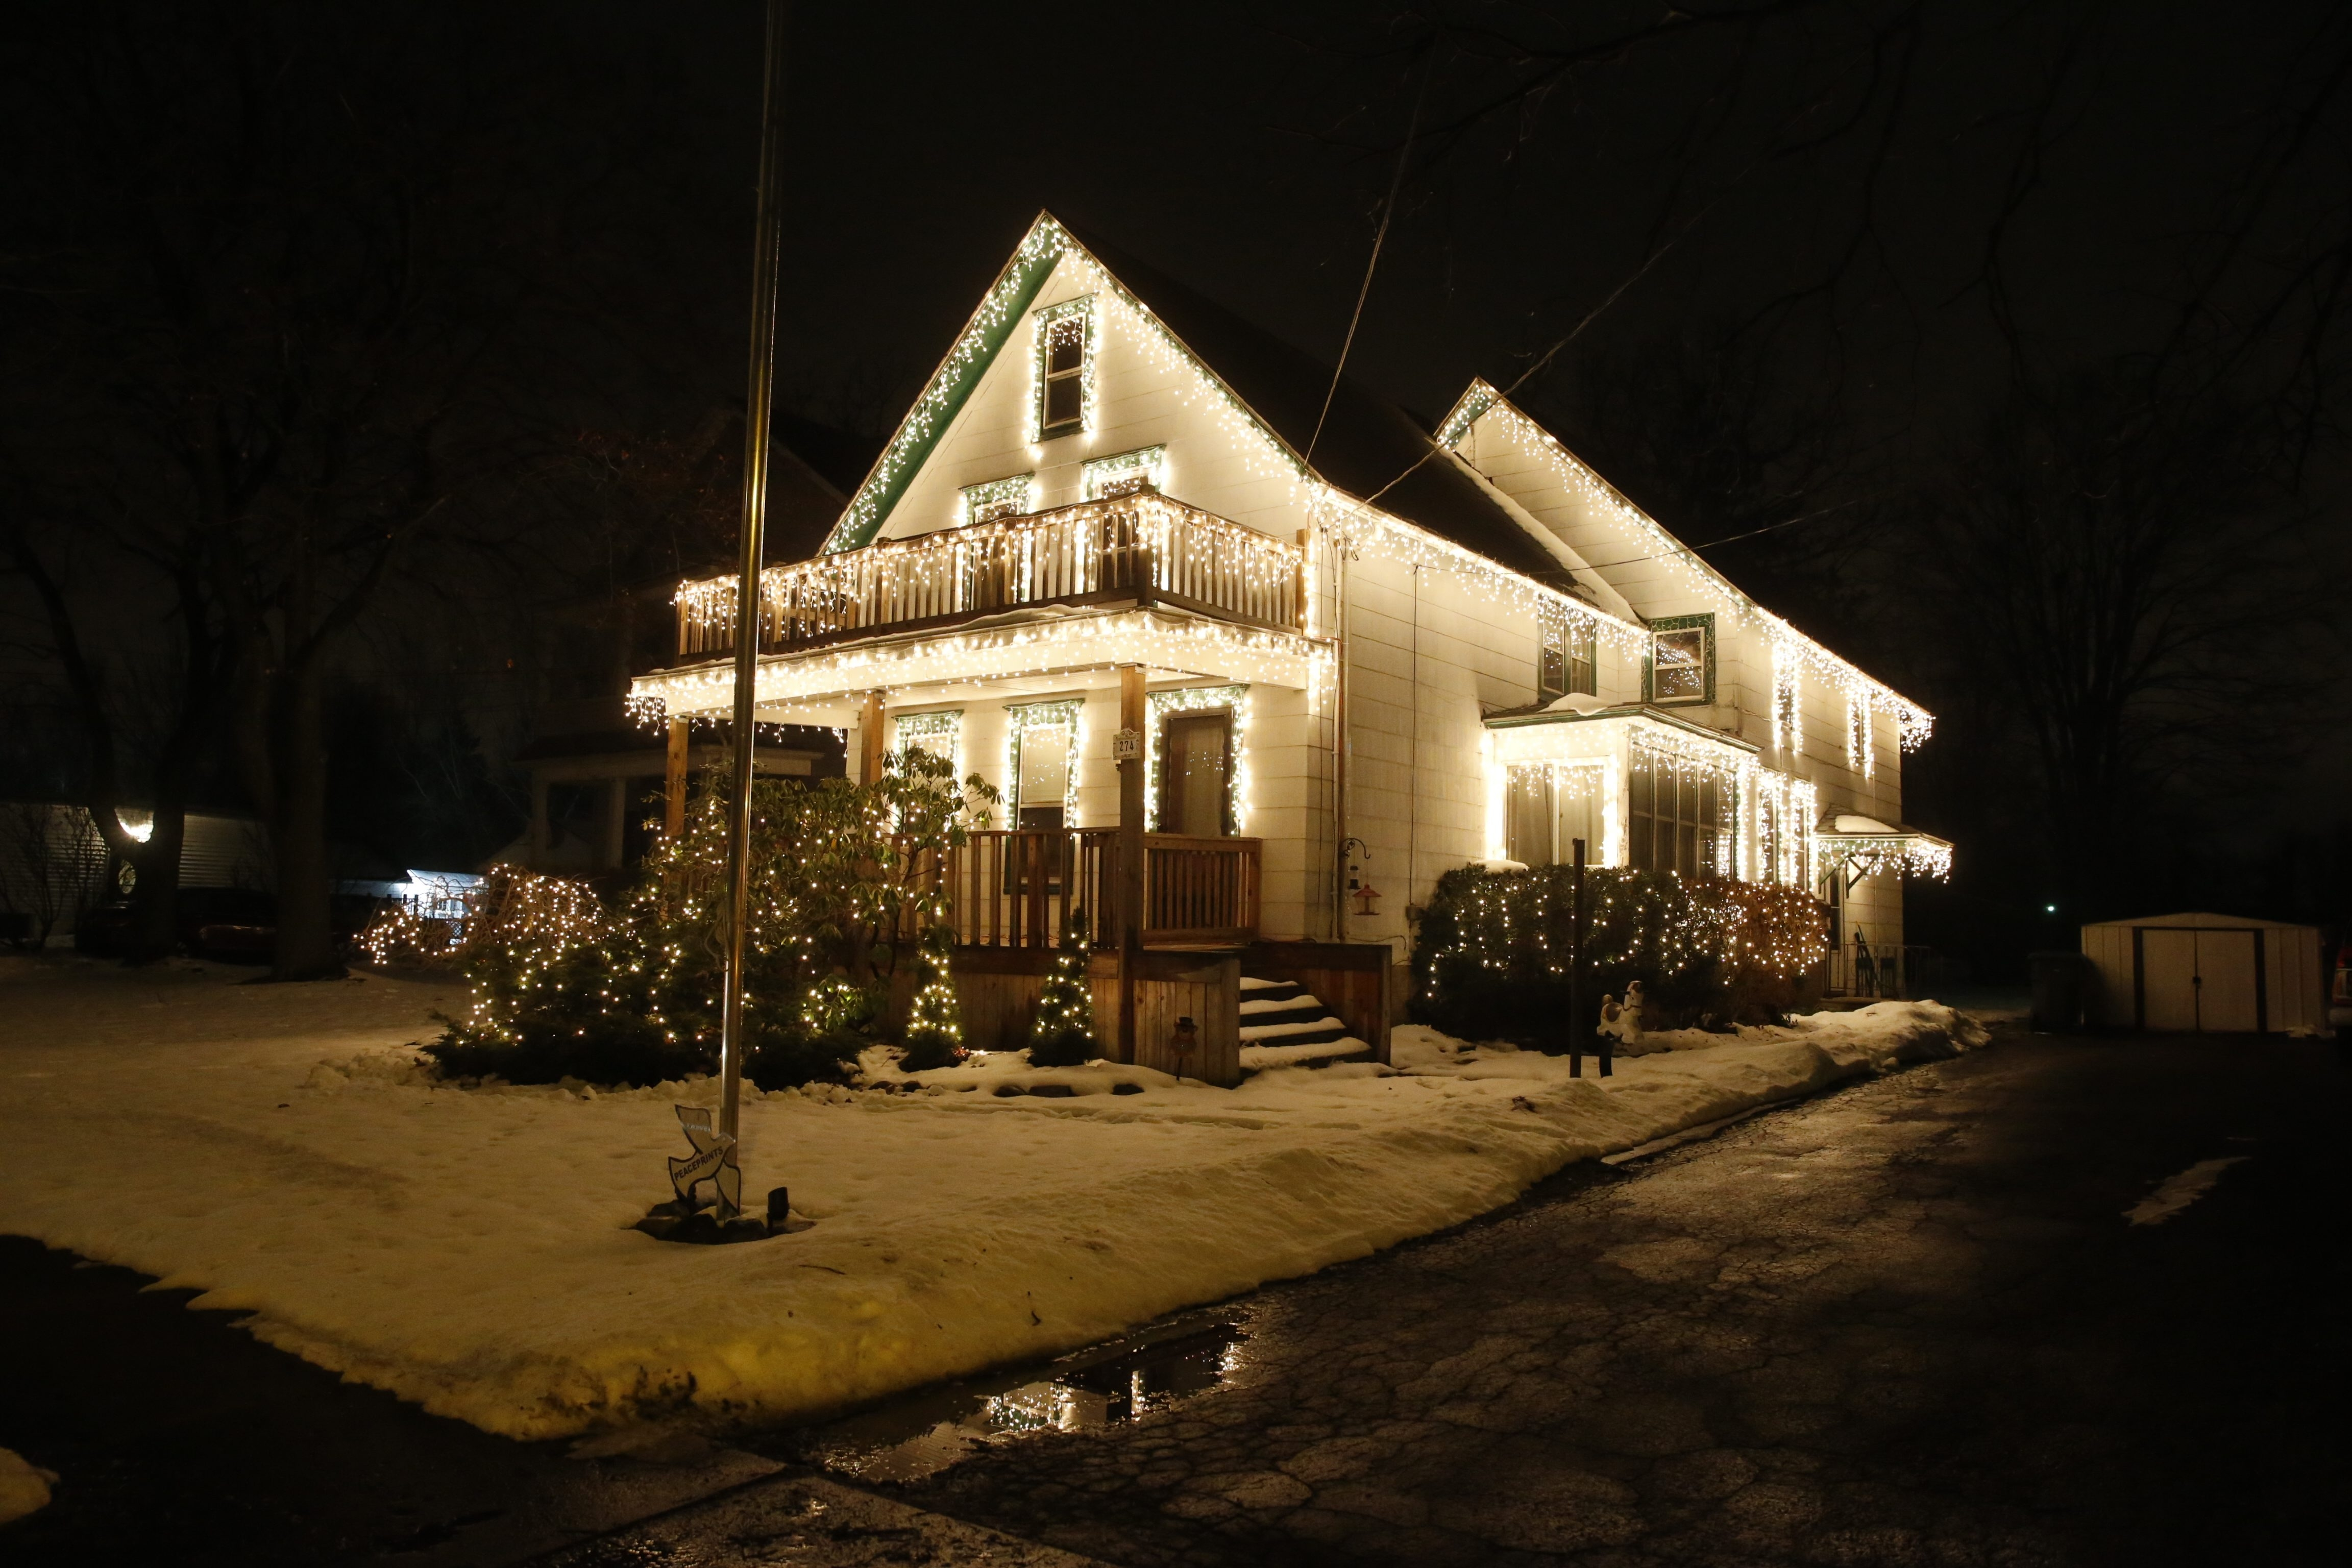 The light show at the Labenski home at 274 Old Falls Blvd., North Tonawanda, continues through about Jan. 6.